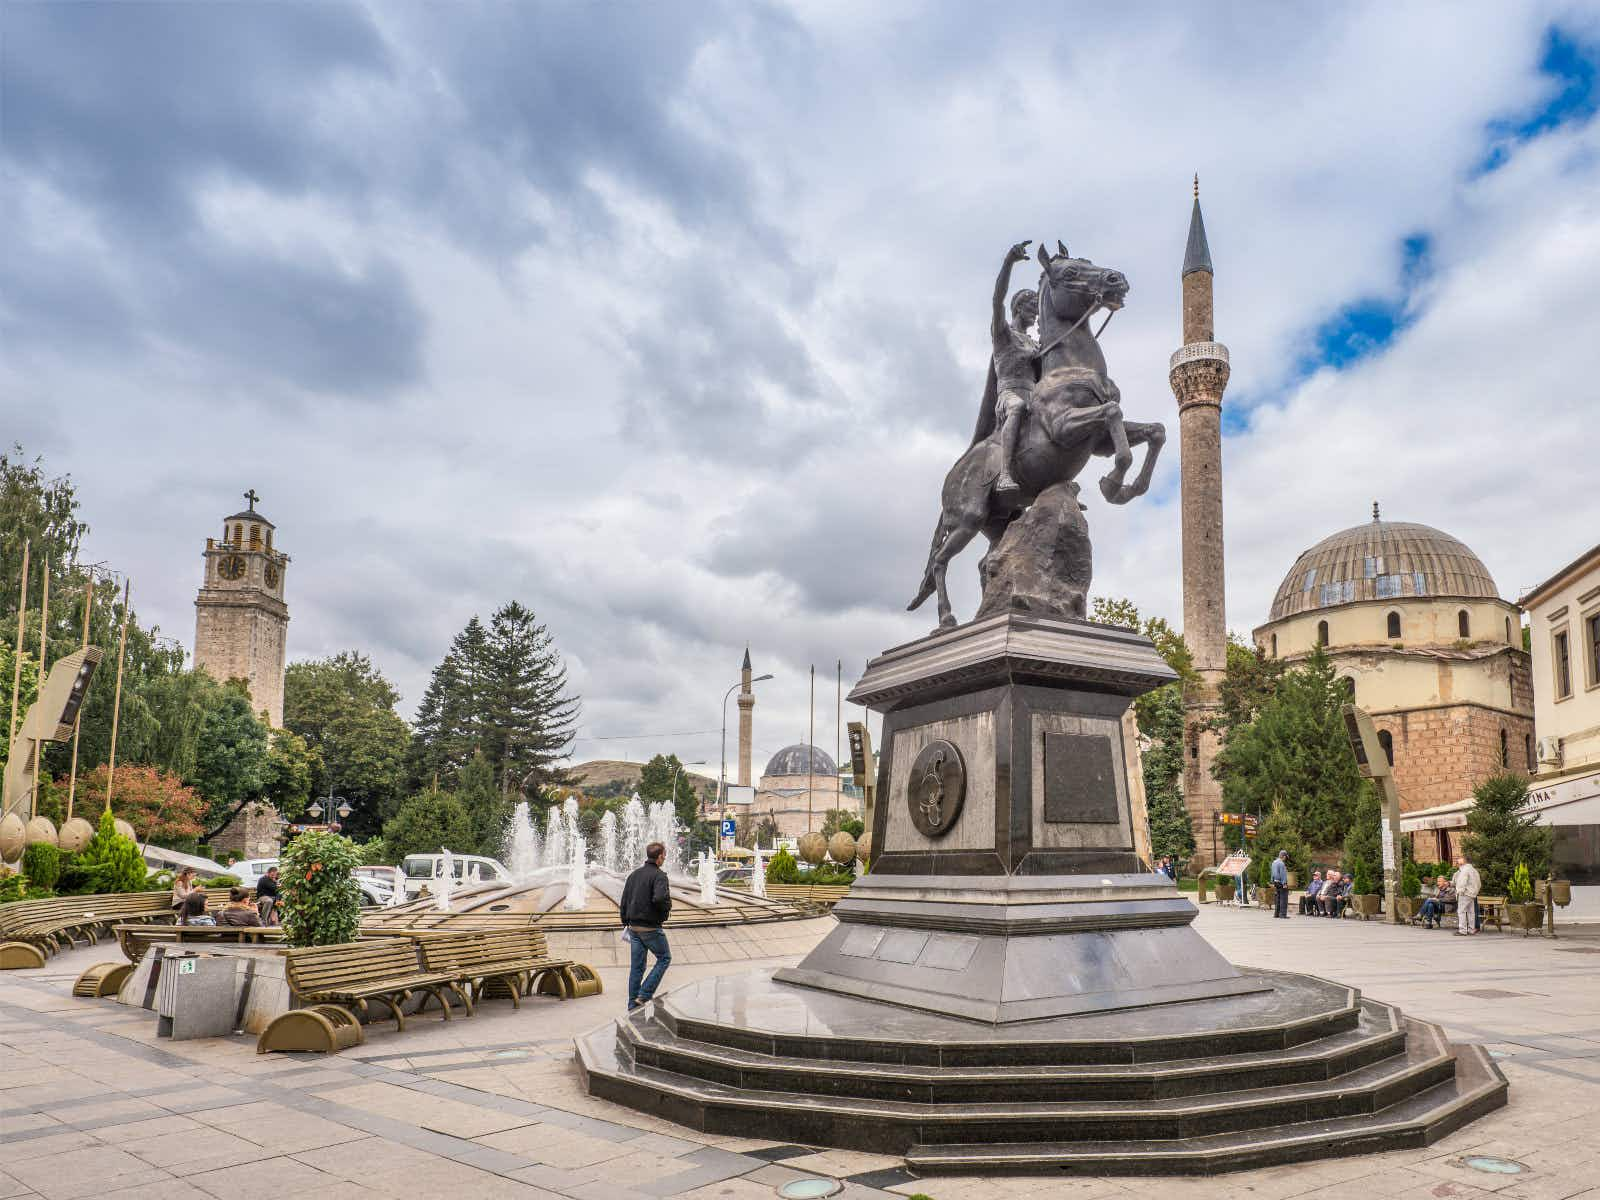 Philip II of Macedon statue at Magnolia Square in Bitola © Witold Skrypczak / Getty Images